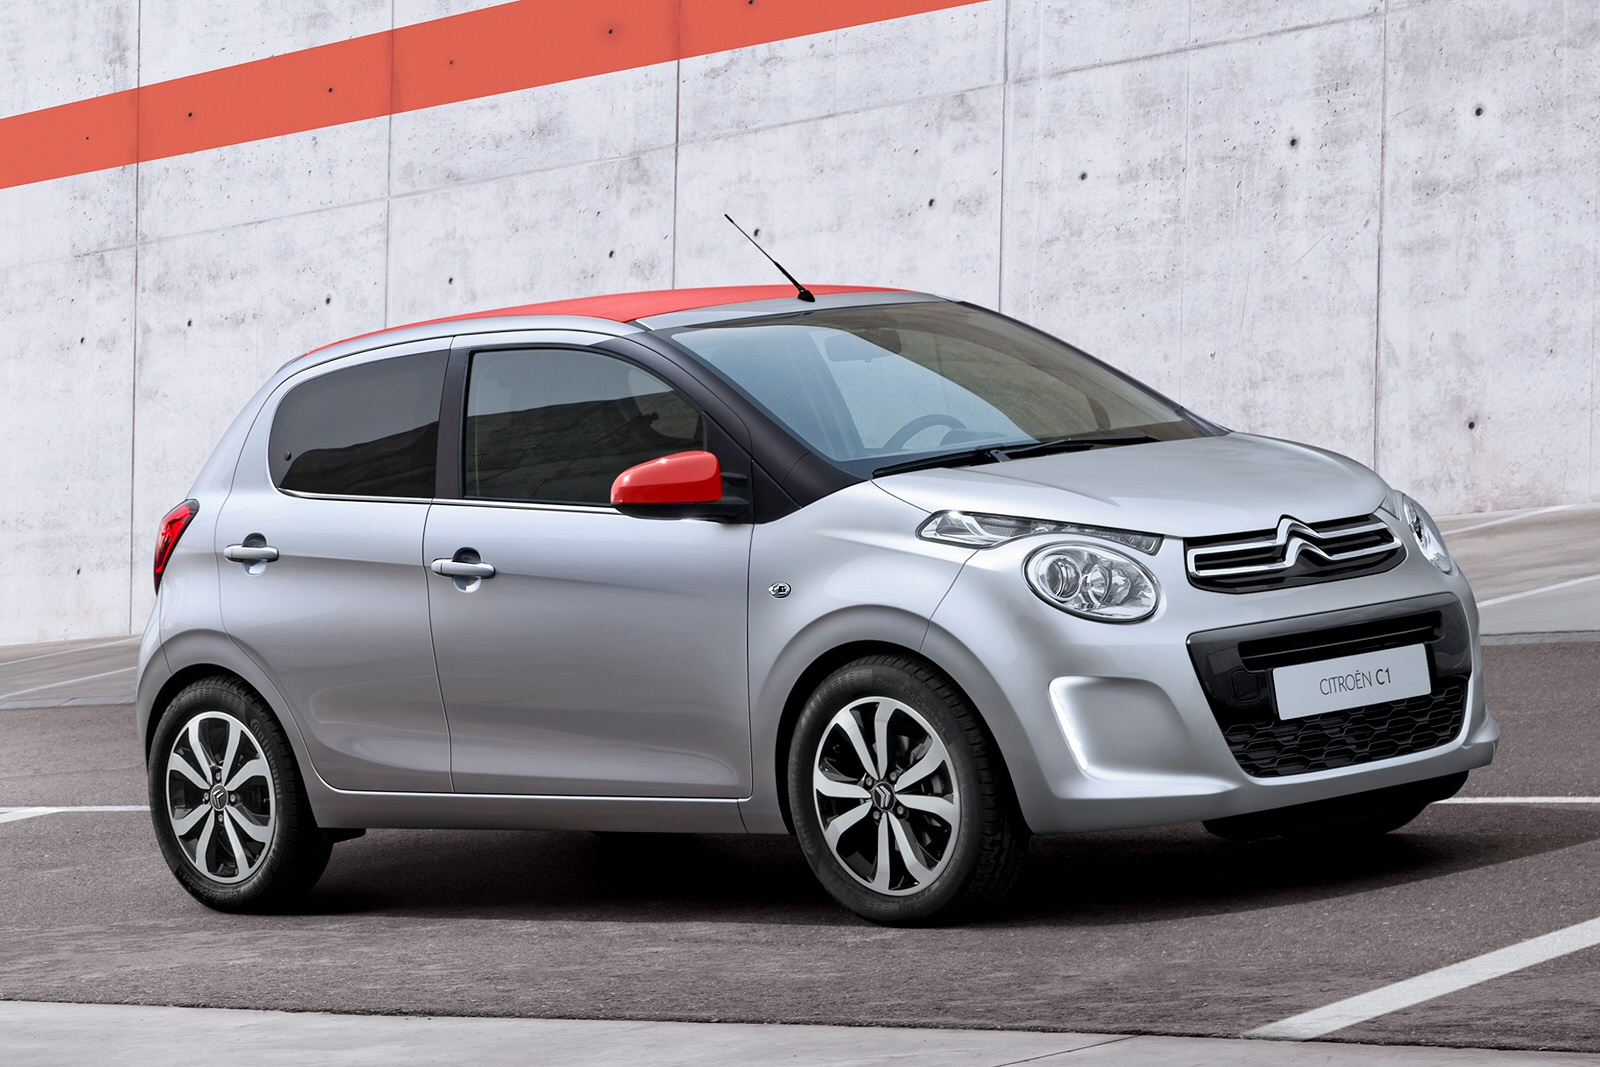 new citroen c1 for sale 2018 prices finance deals robins and day. Black Bedroom Furniture Sets. Home Design Ideas